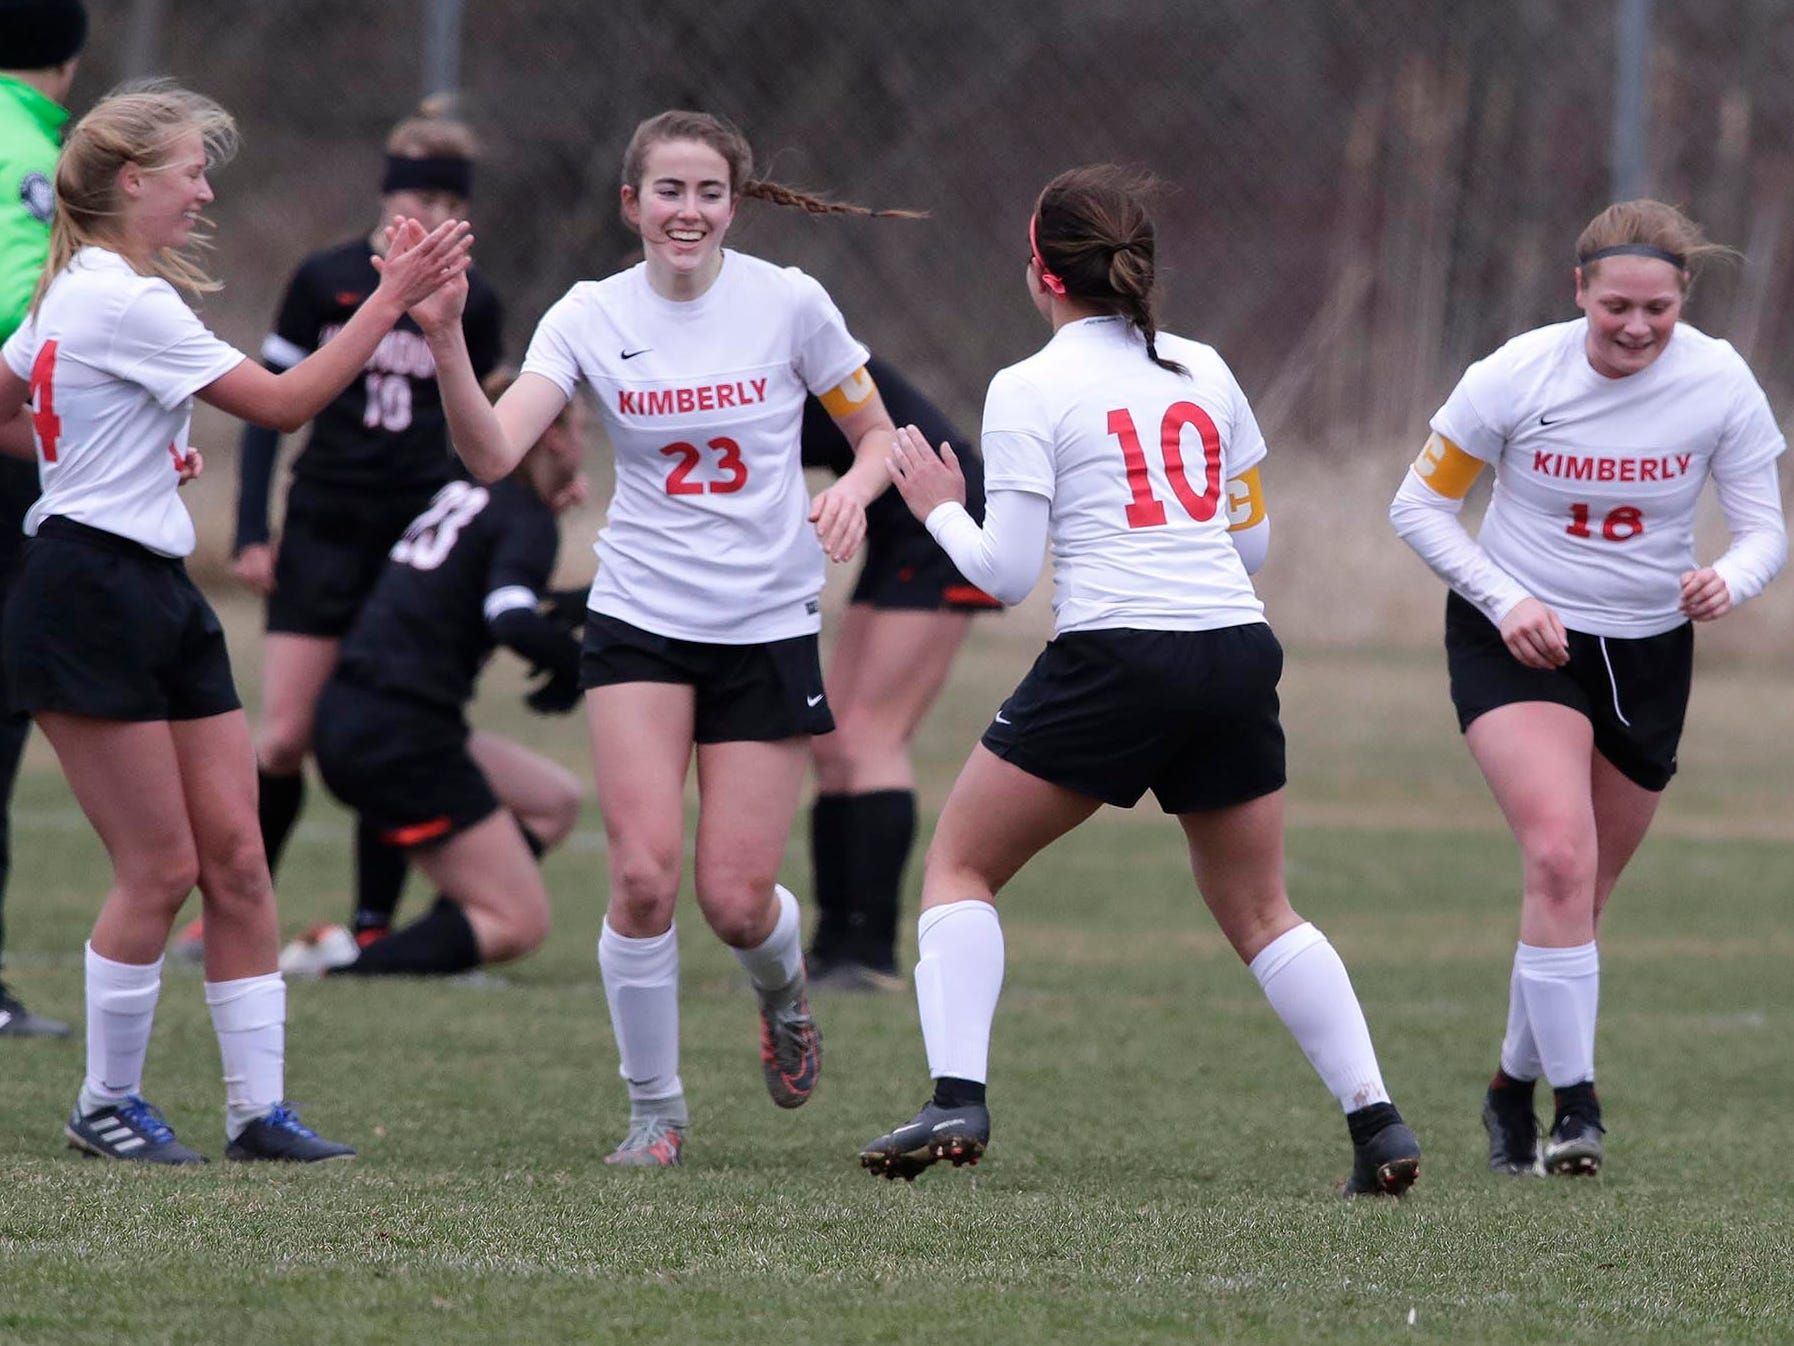 Kimberly's Elsi Twombly (23) celebrates her goal against Plymouth, Saturday, April 13, 2019, in Plymouth, Wis.